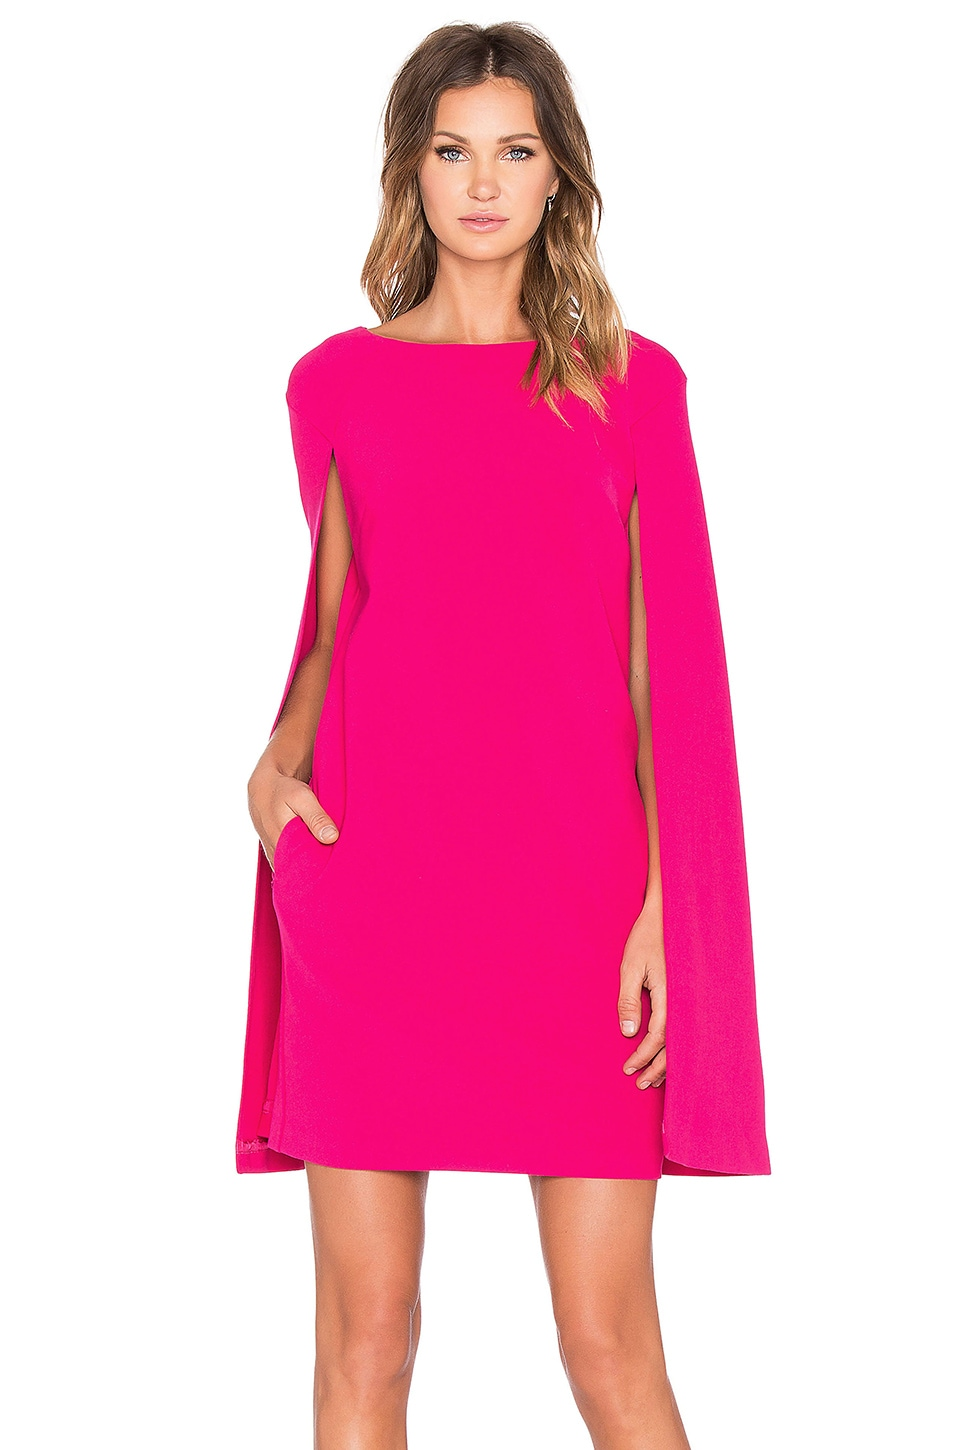 Trina Turk Gizela Mini Dress in Pink Clash | REVOLVE